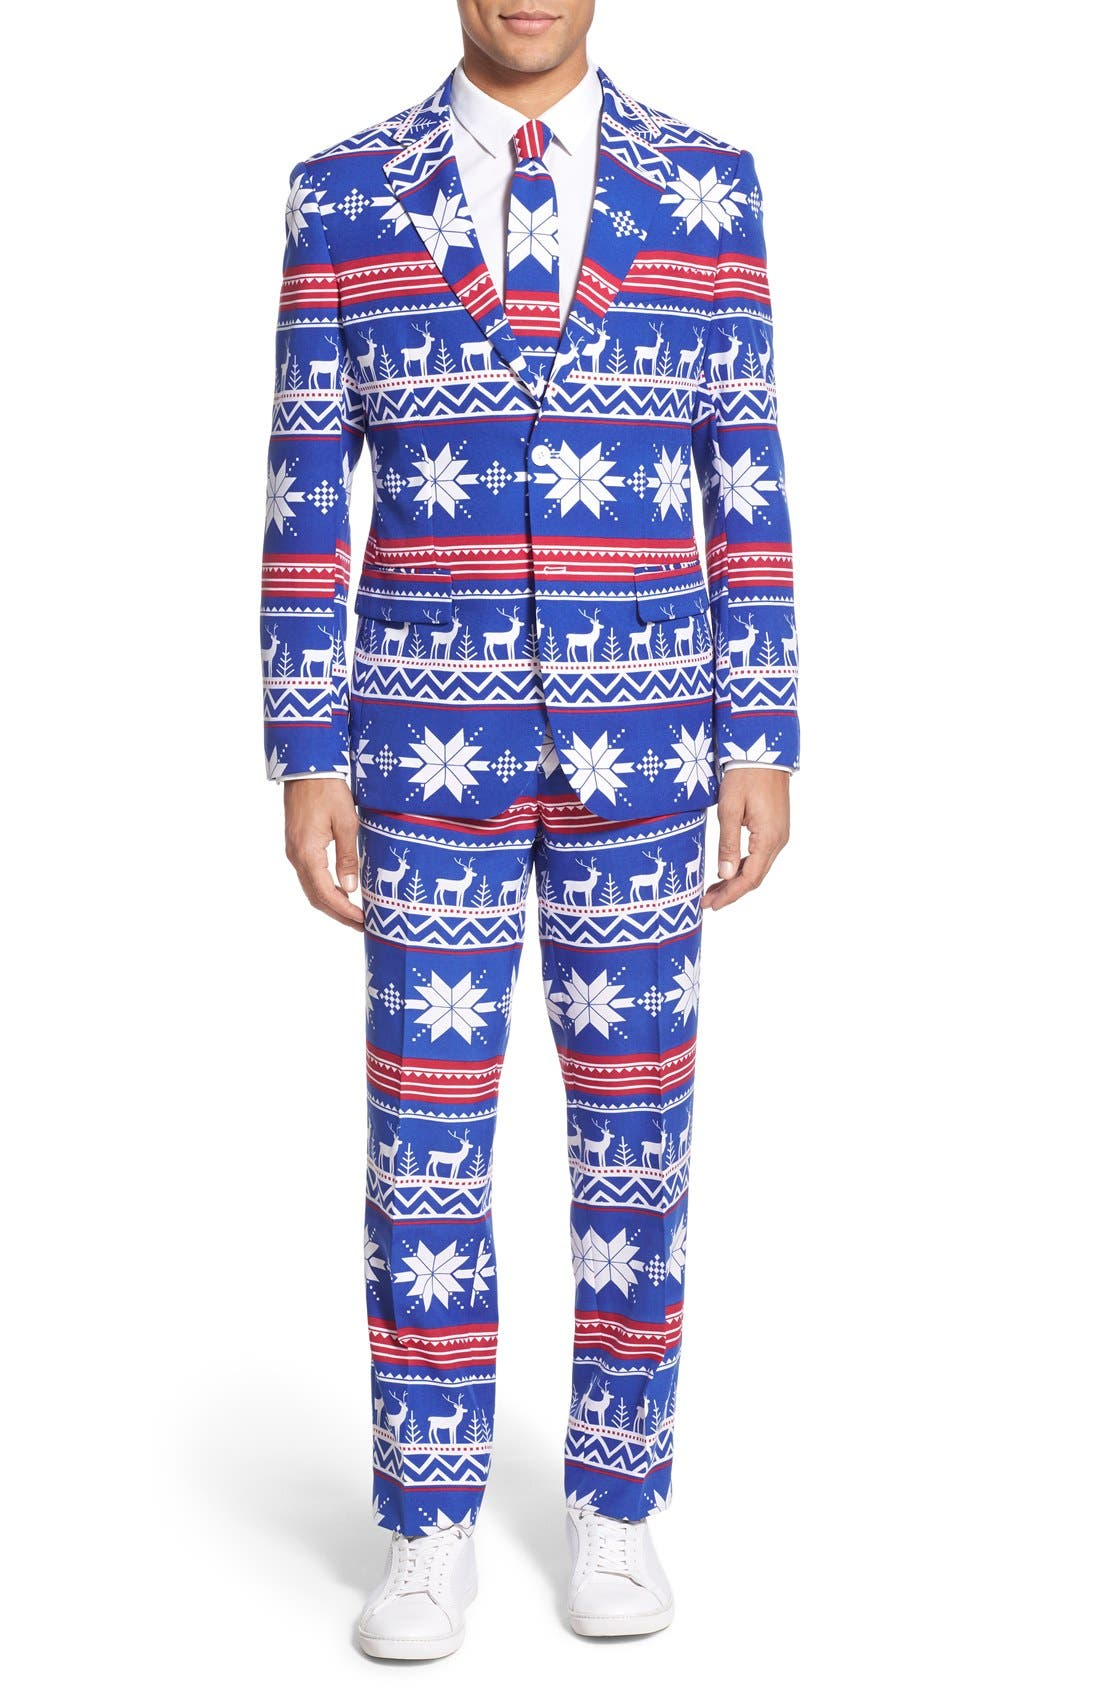 'Rudolph' Holiday Suit & Tie,                             Main thumbnail 1, color,                             Blue